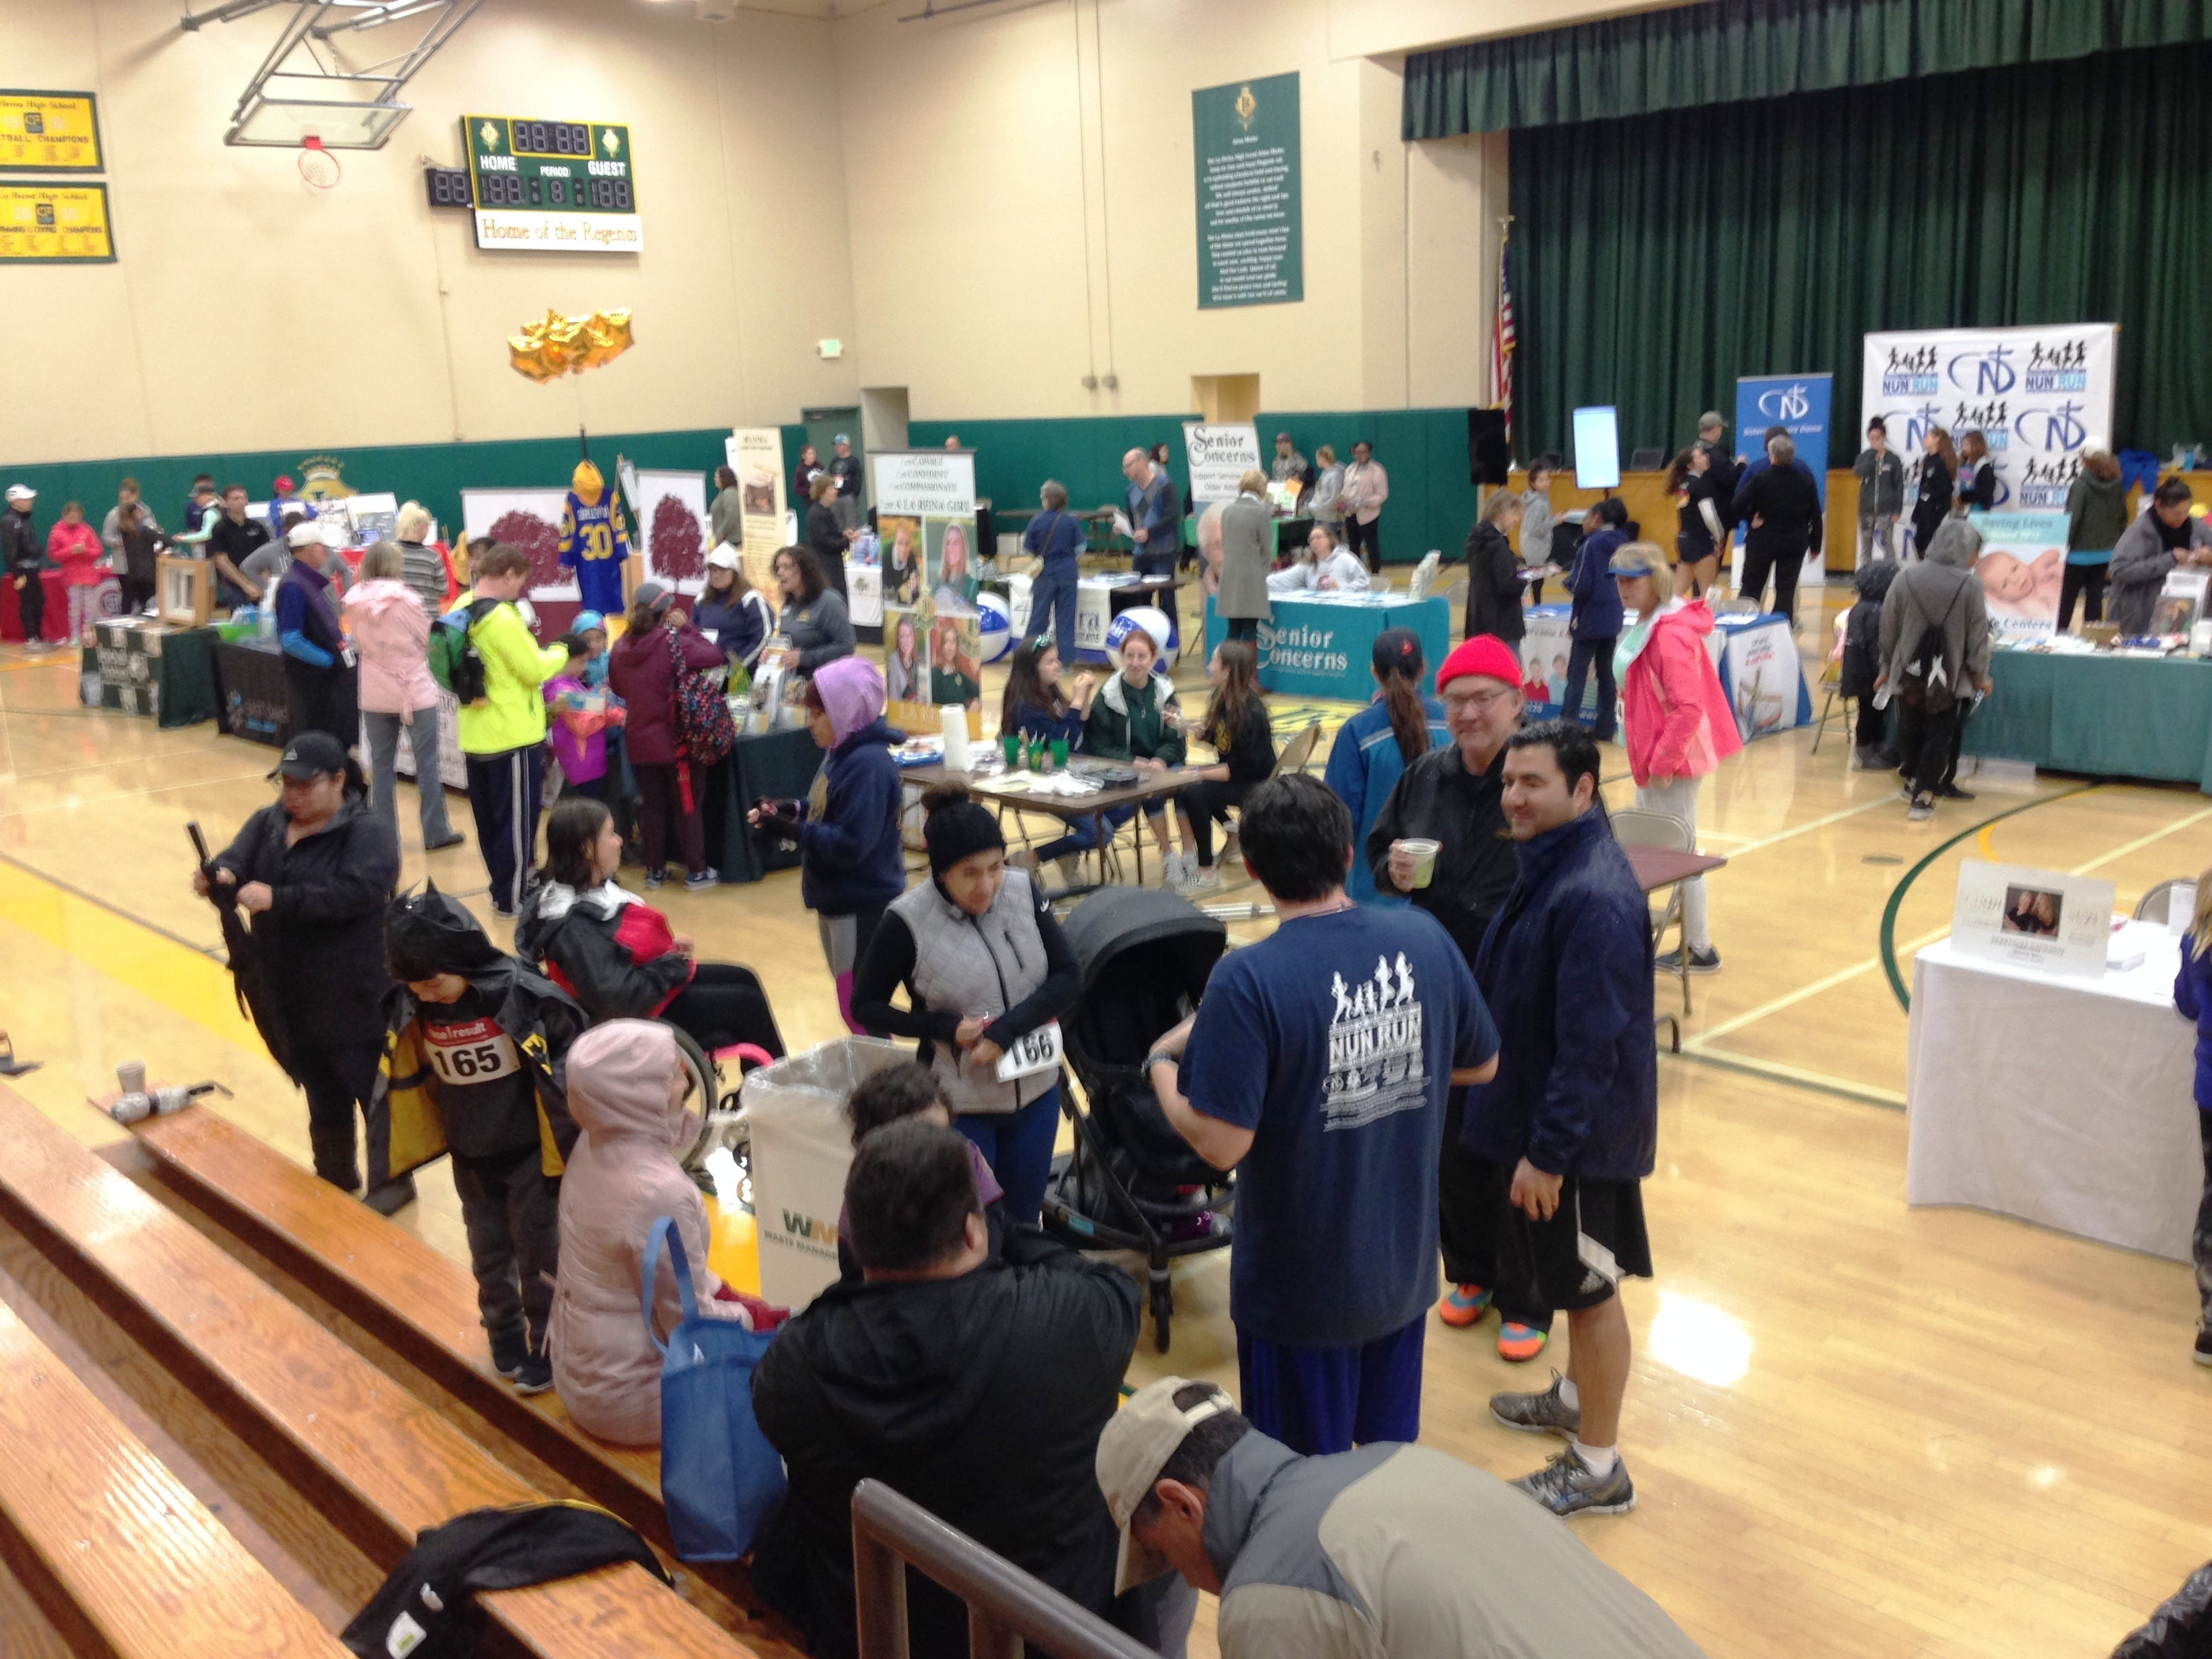 A community service fair inside the gymnasium was one of the event highlights during the fifth annual Sisters of Notre Dame Nun Run, presented by La Reina High School and Middle School in Thousand Oaks on Saturday.